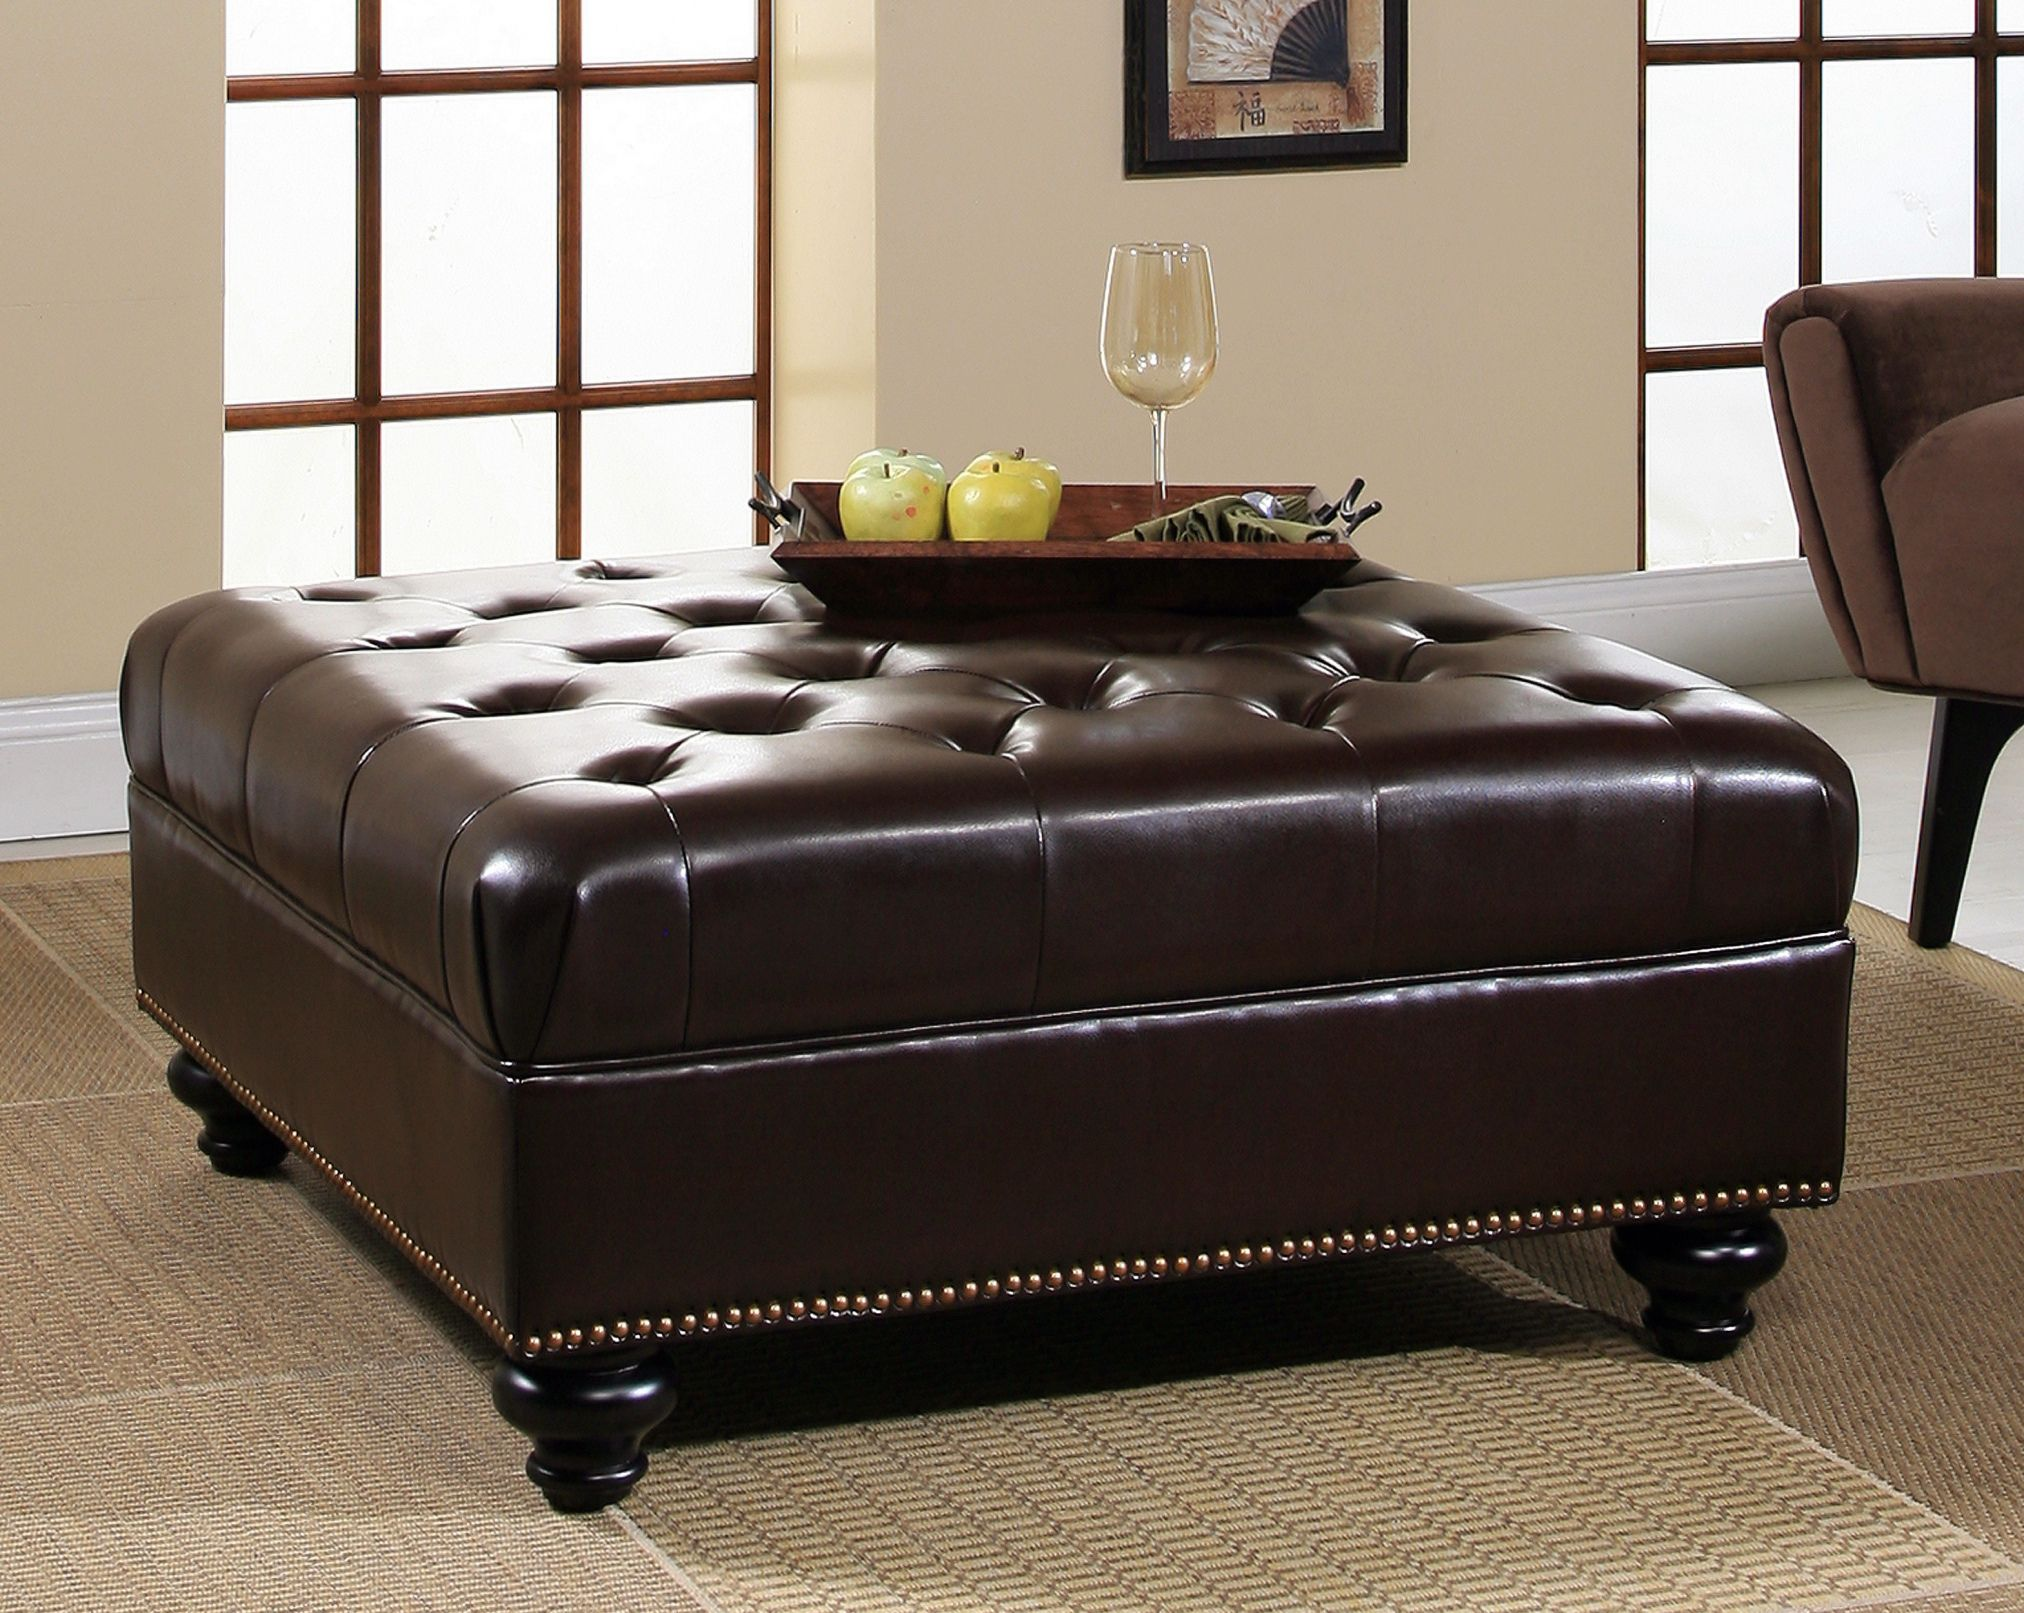 Square Leather Storage Ottoman Coffee Table Living Room